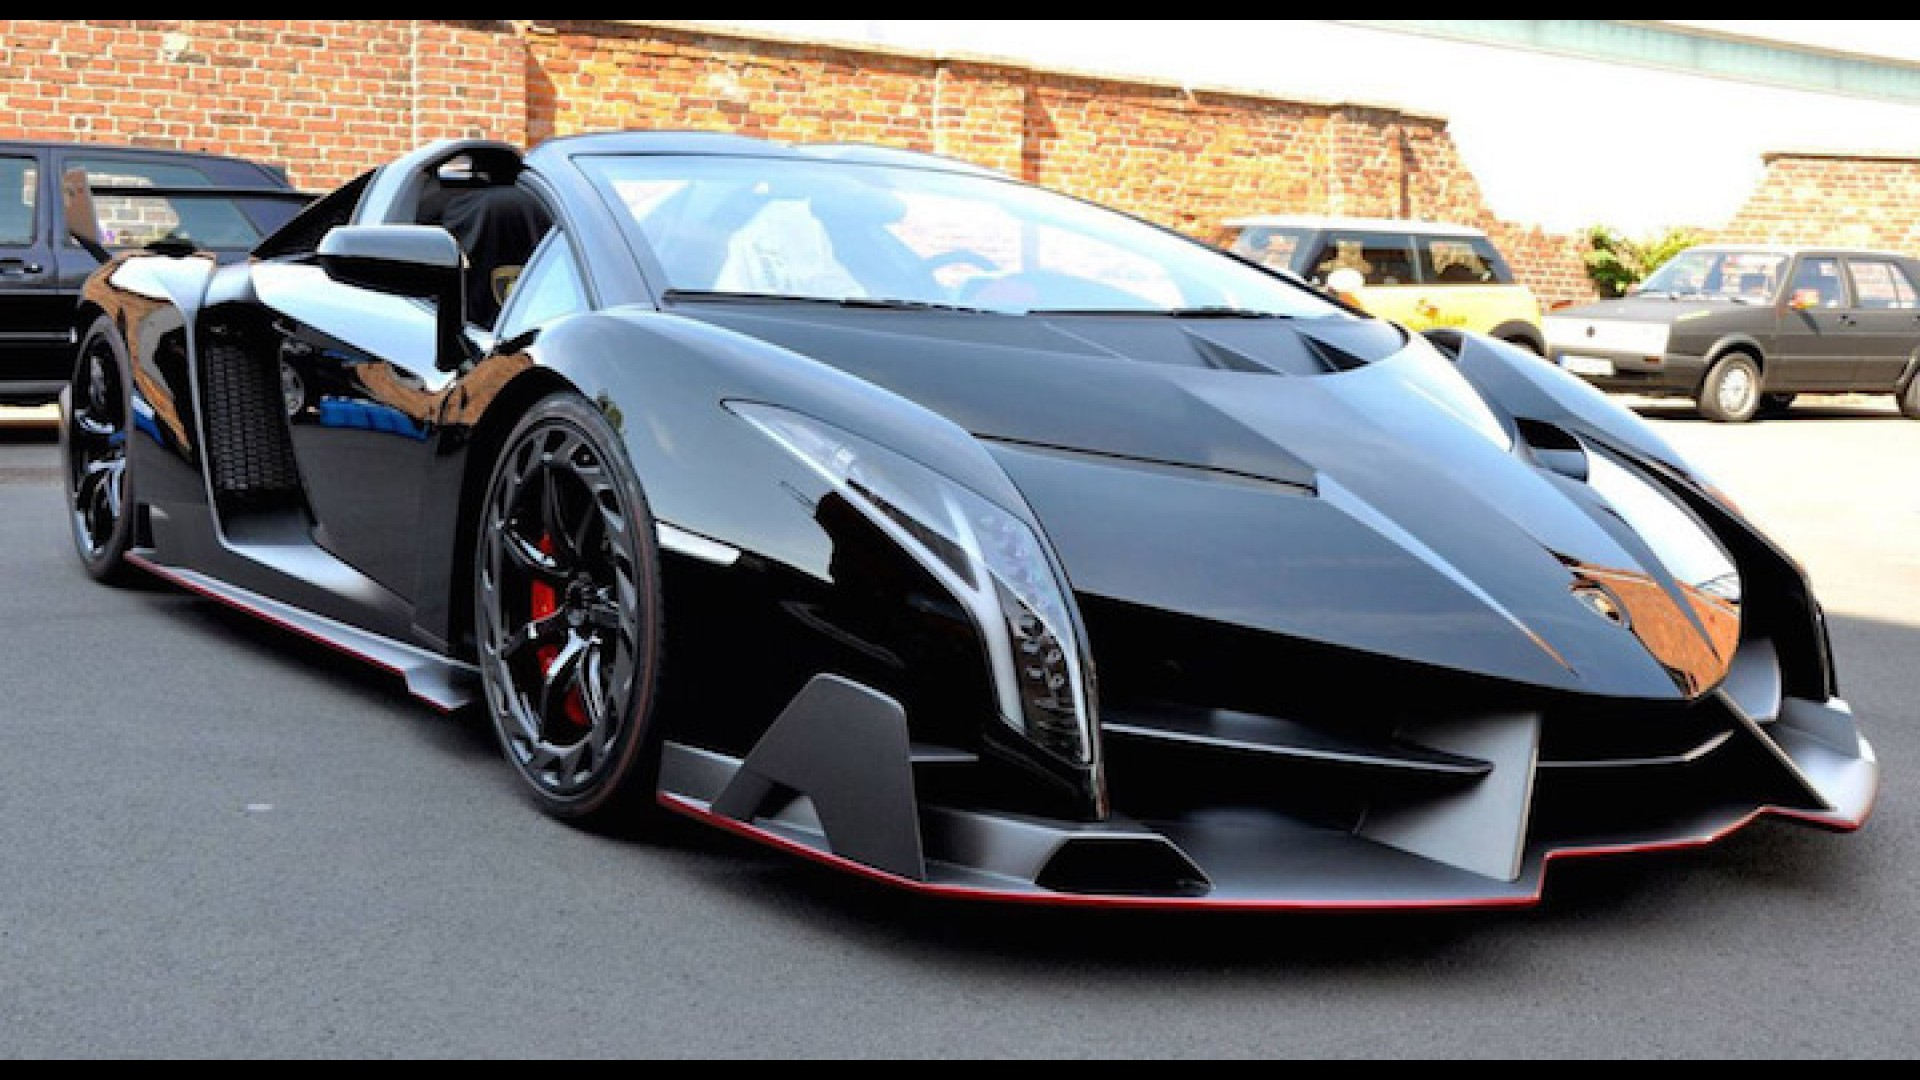 Lamborghini Veneno For Sale >> Lamborghini Veneno Roadster Sells For A Whopping 5 5 Million